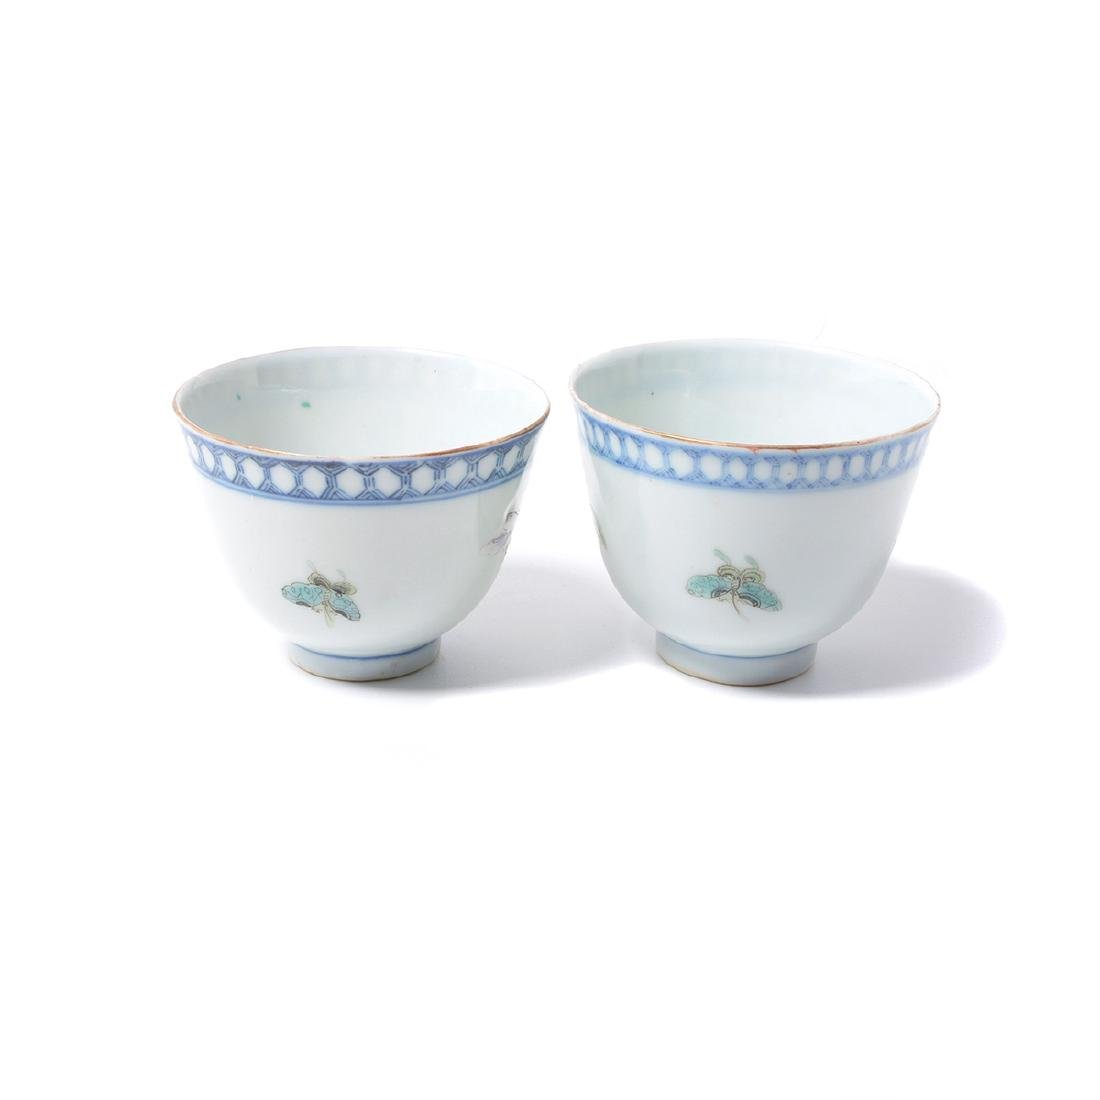 Pr of Famille Rose Cups with Silver Lids & Stands, - 4